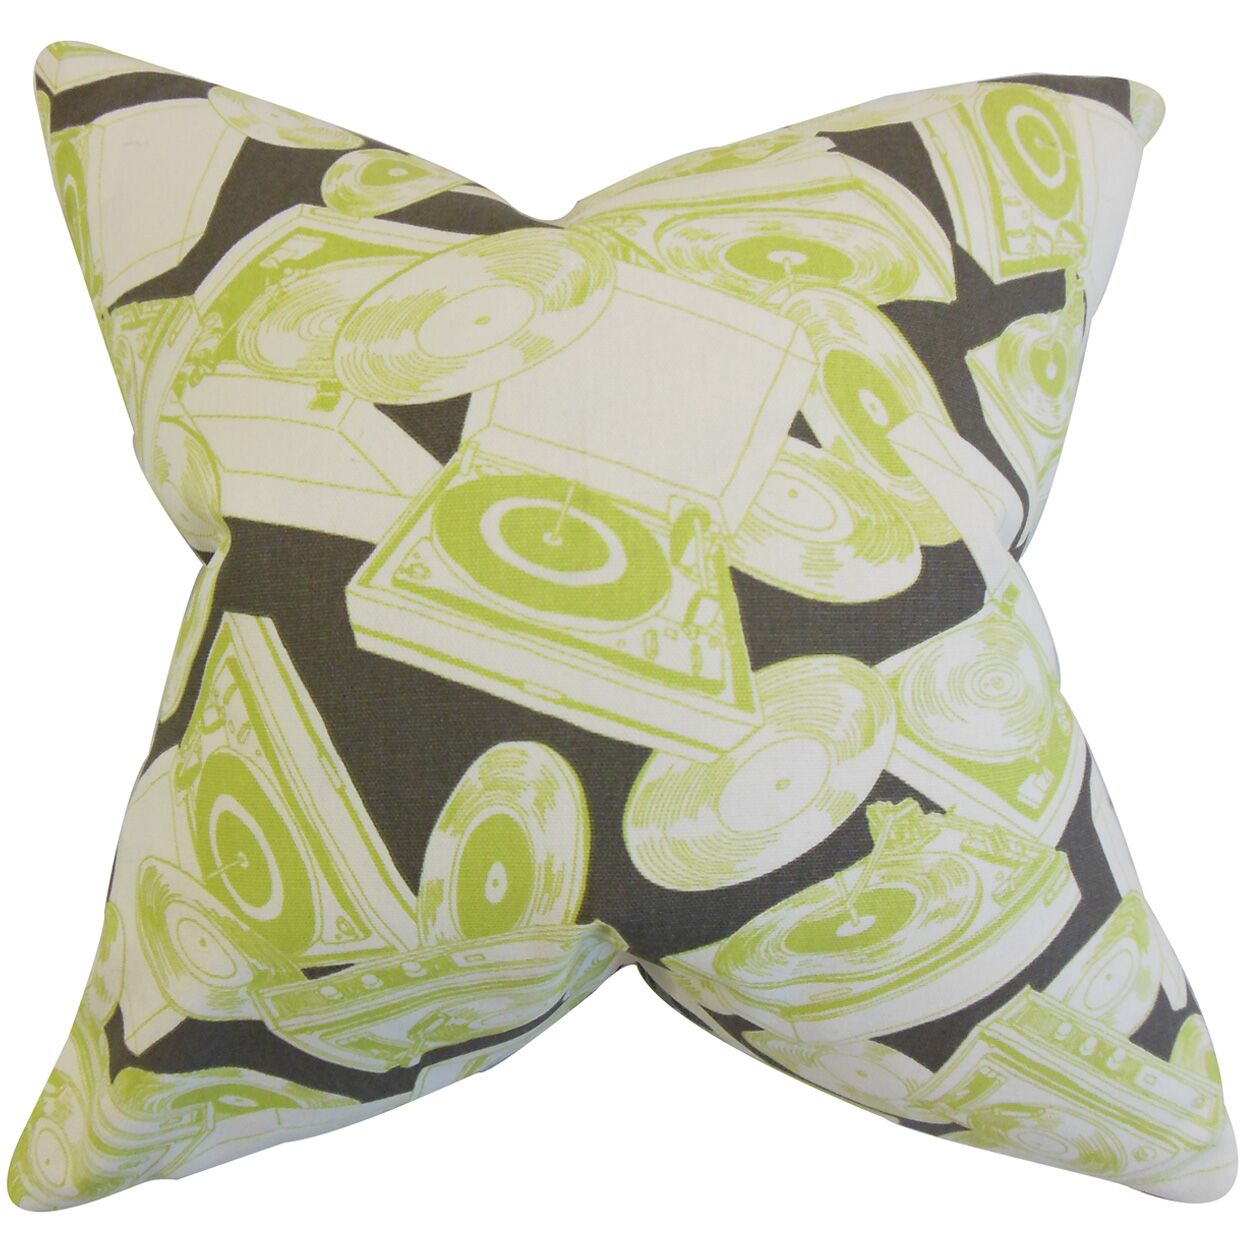 Rucks Geometric Cotton Throw Pillow